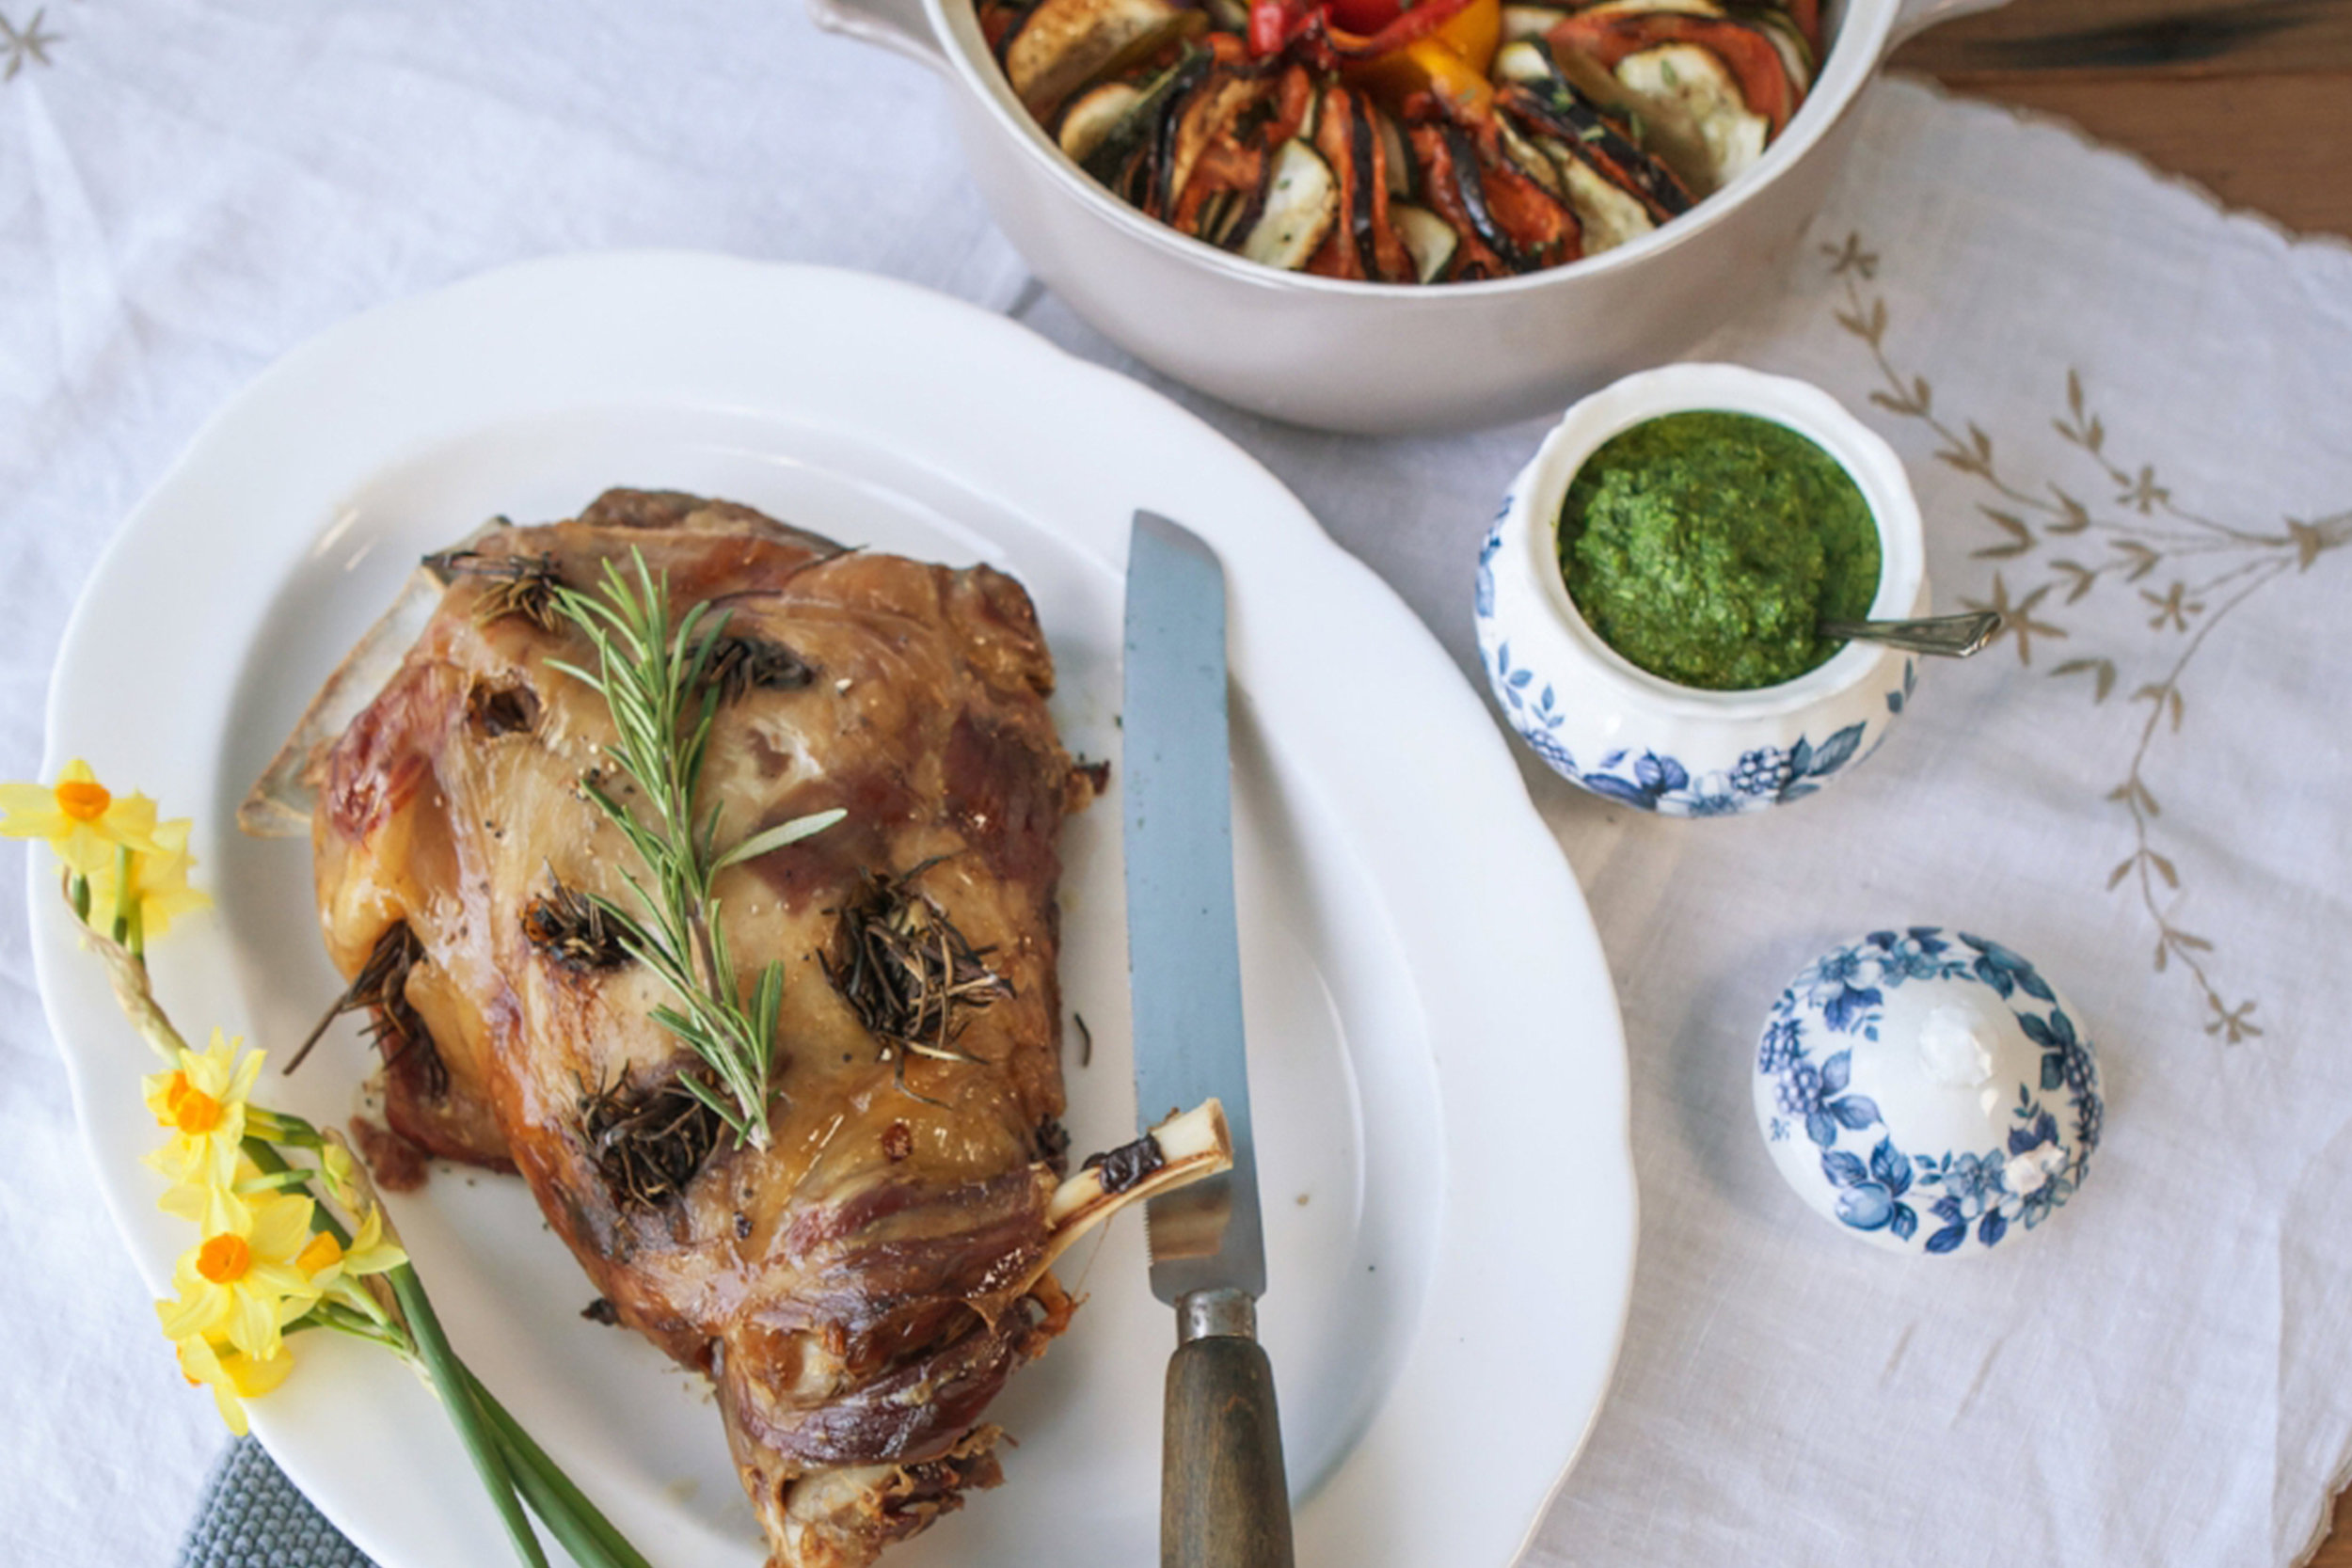 Special Occasion Recipes - These special recipes showcase watercress' full potential as an ingredient worthy of any top restaurant, and will leave your guests feeling as though you've really gone the extra mile.